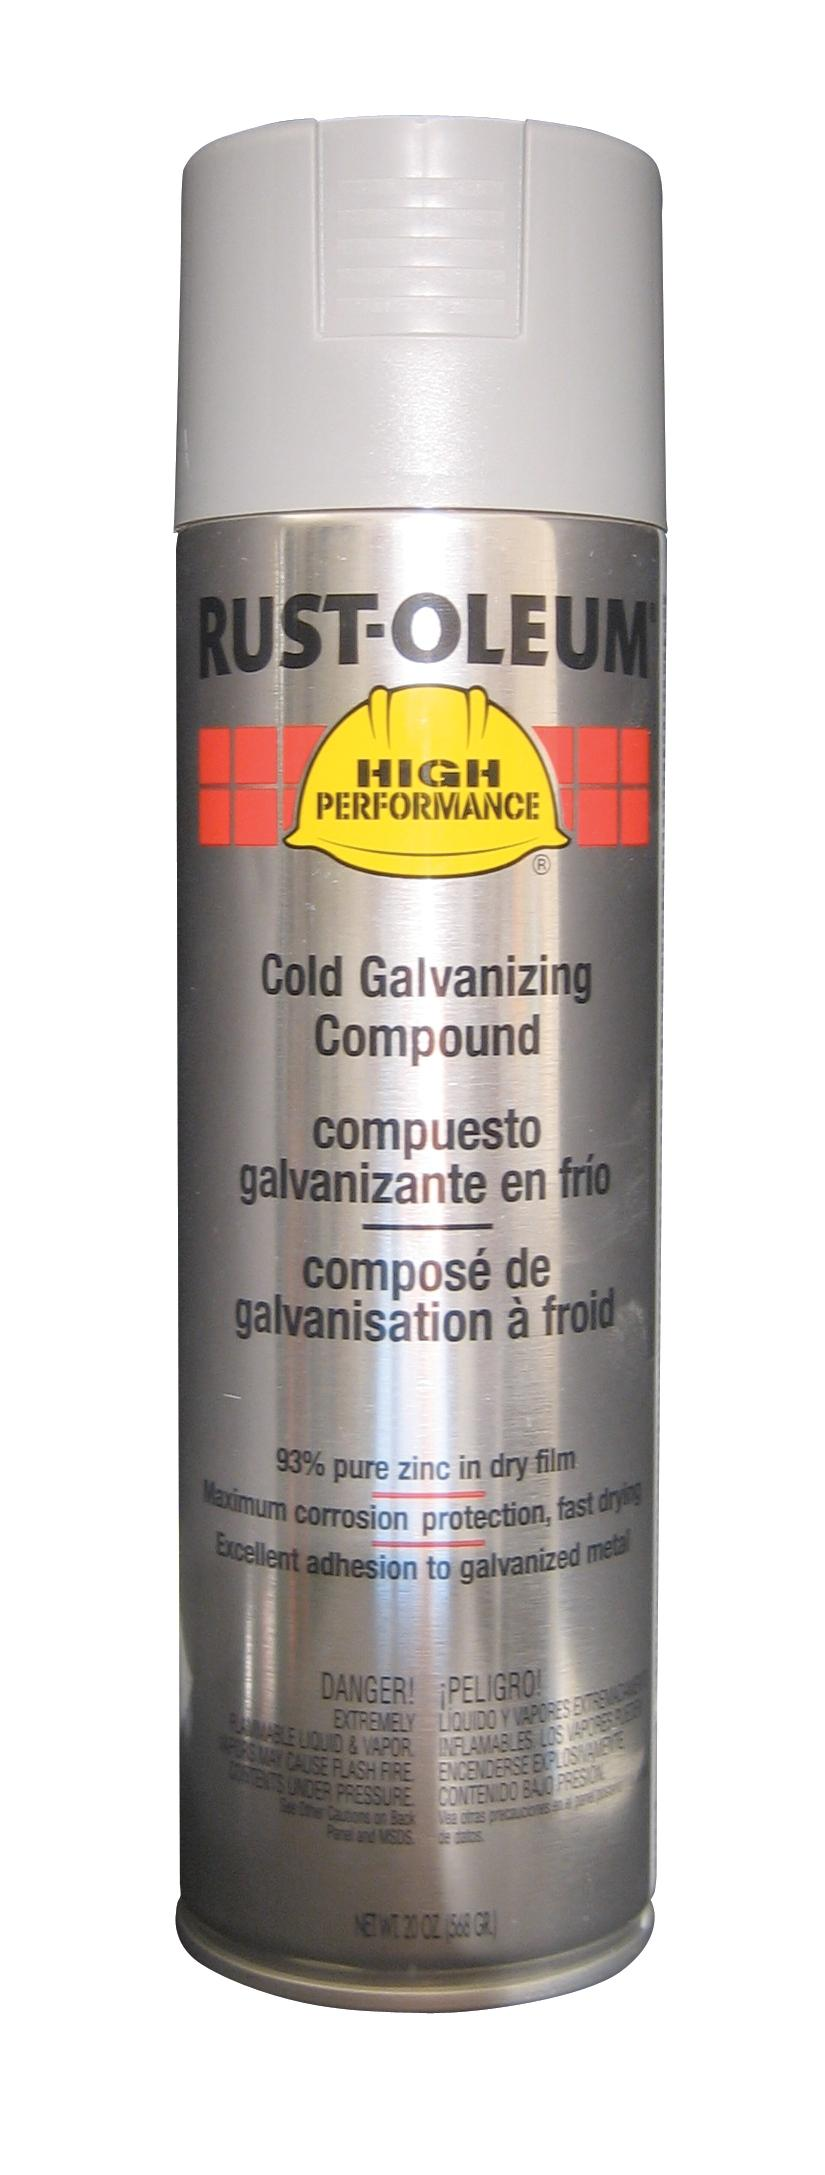 Rust-Oleum Galvanizing Paint: Spray Paint, Galvanized, Flat, 2 hr Dry Time, 24 sq ft, 15 fl oz Container Size